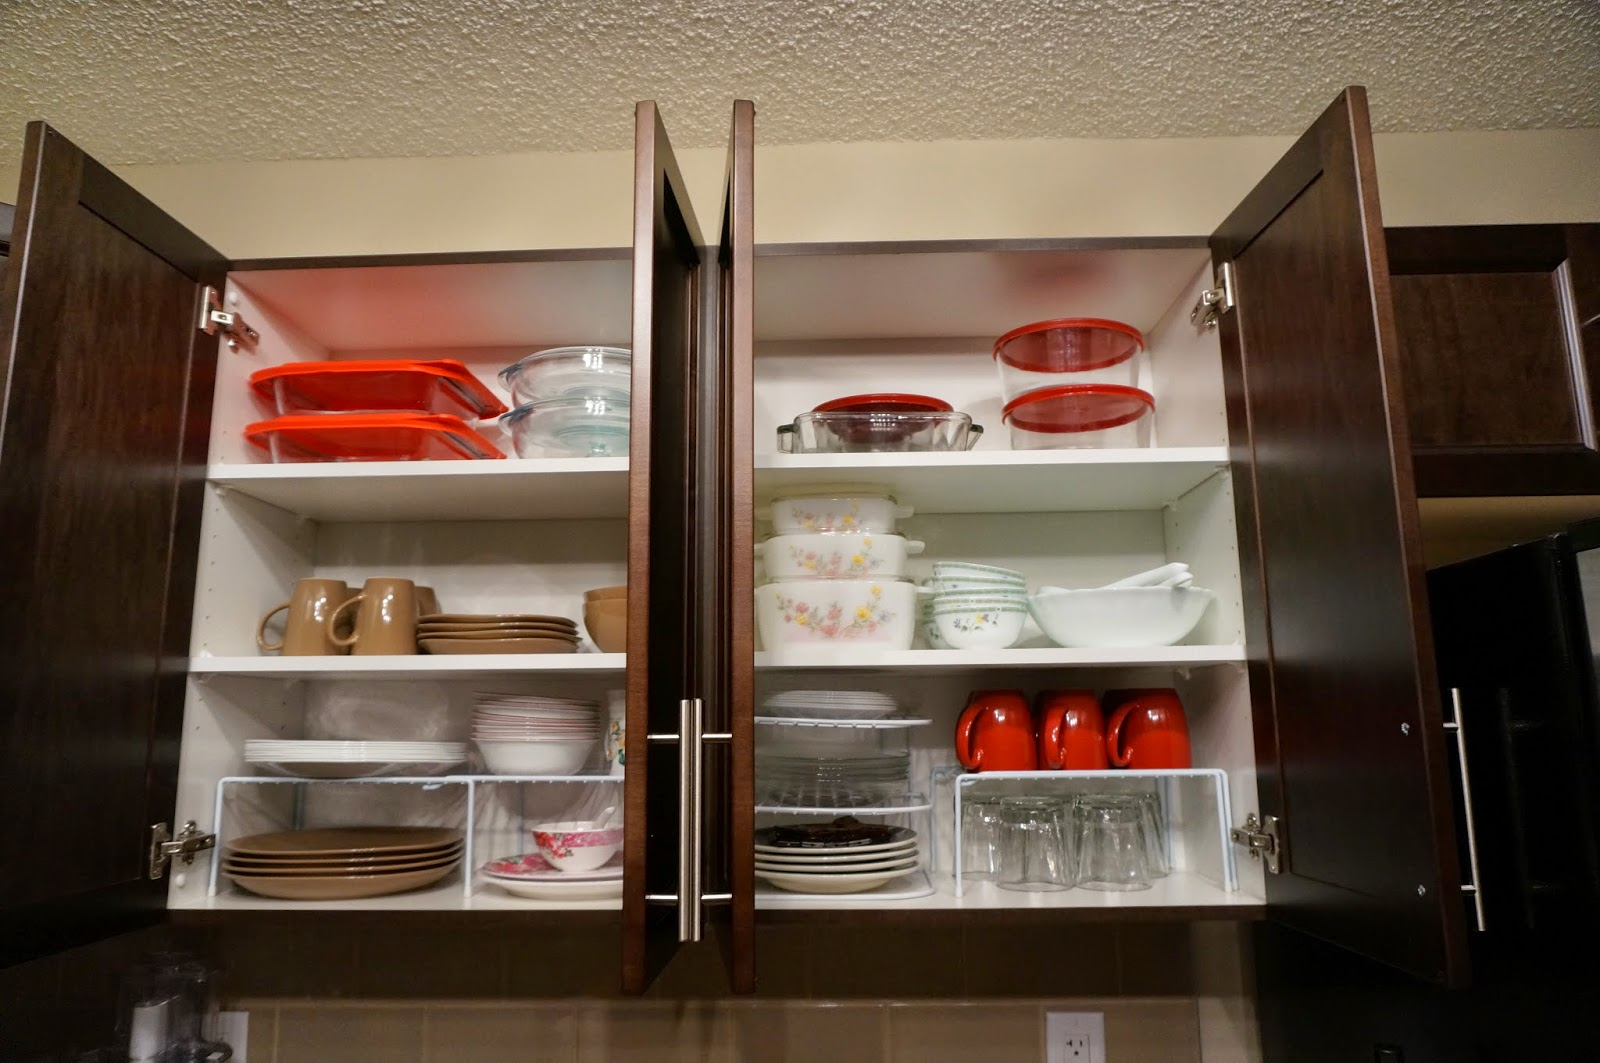 Amazing How To Organize Kitchen Cabinet Shelves?